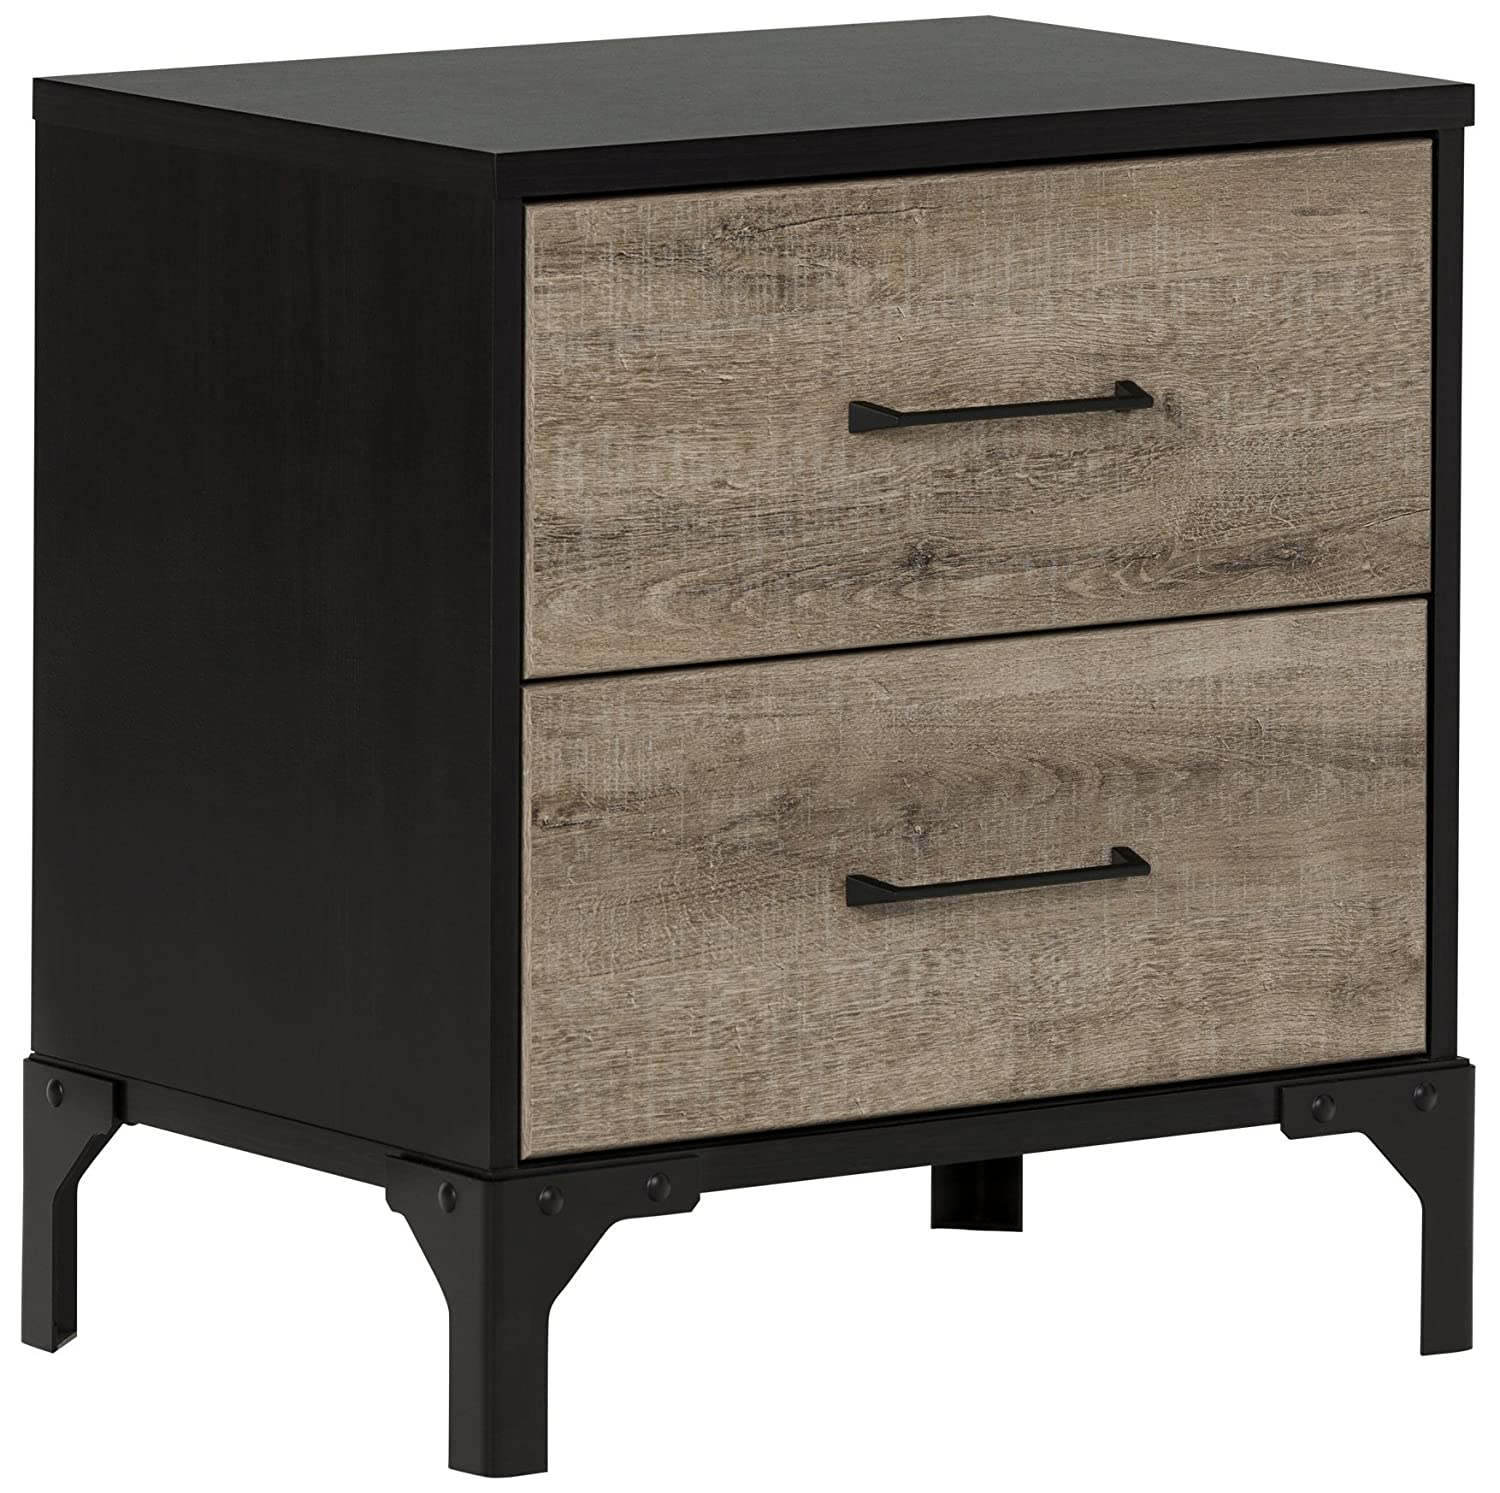 South Shore Furniture Valet 2-Drawer Nightstand, Weathered Oak and Ebony 10498